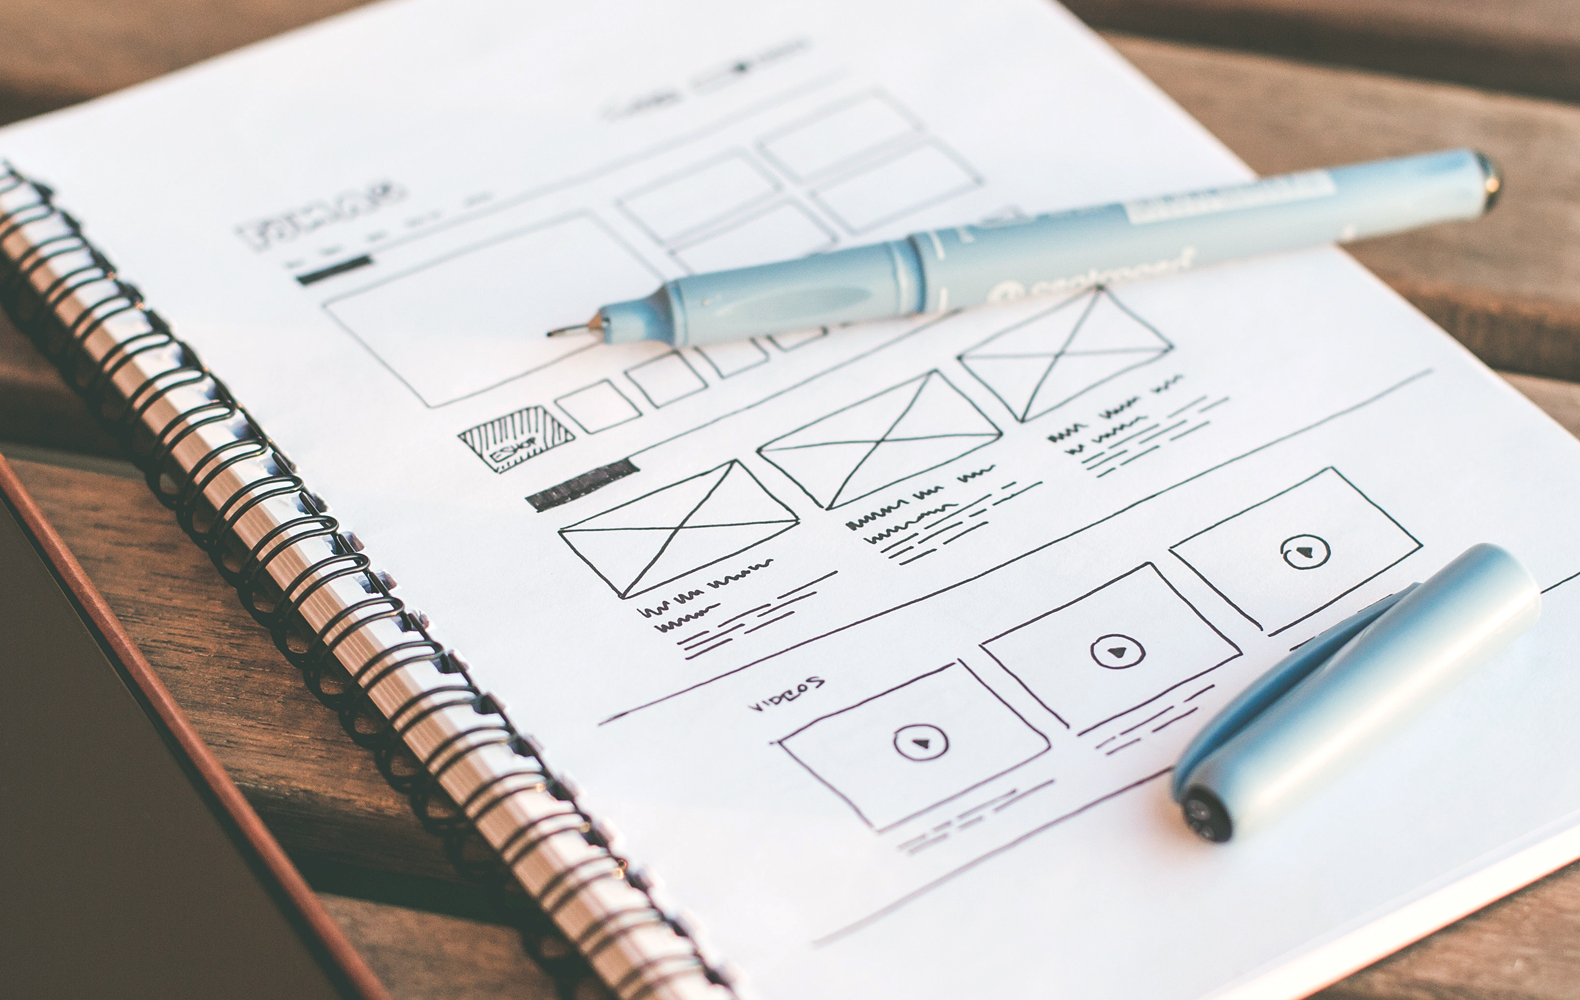 hand-sketched wireframe in notebook